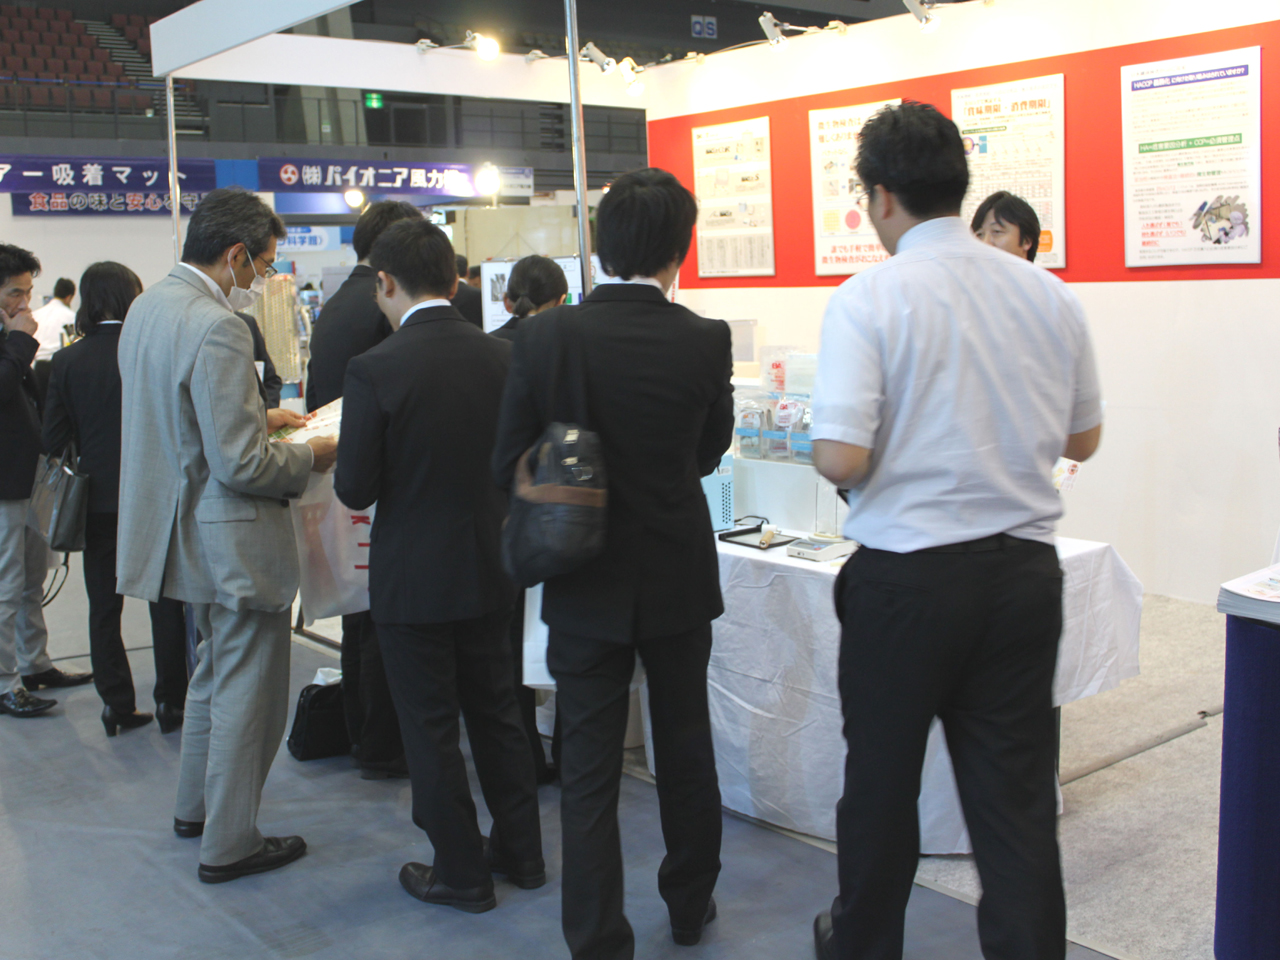 第26回西日本食品産業創造展'16 (PROFESSIONAL FOODSERVICE, INDUSTRY & CREATION)